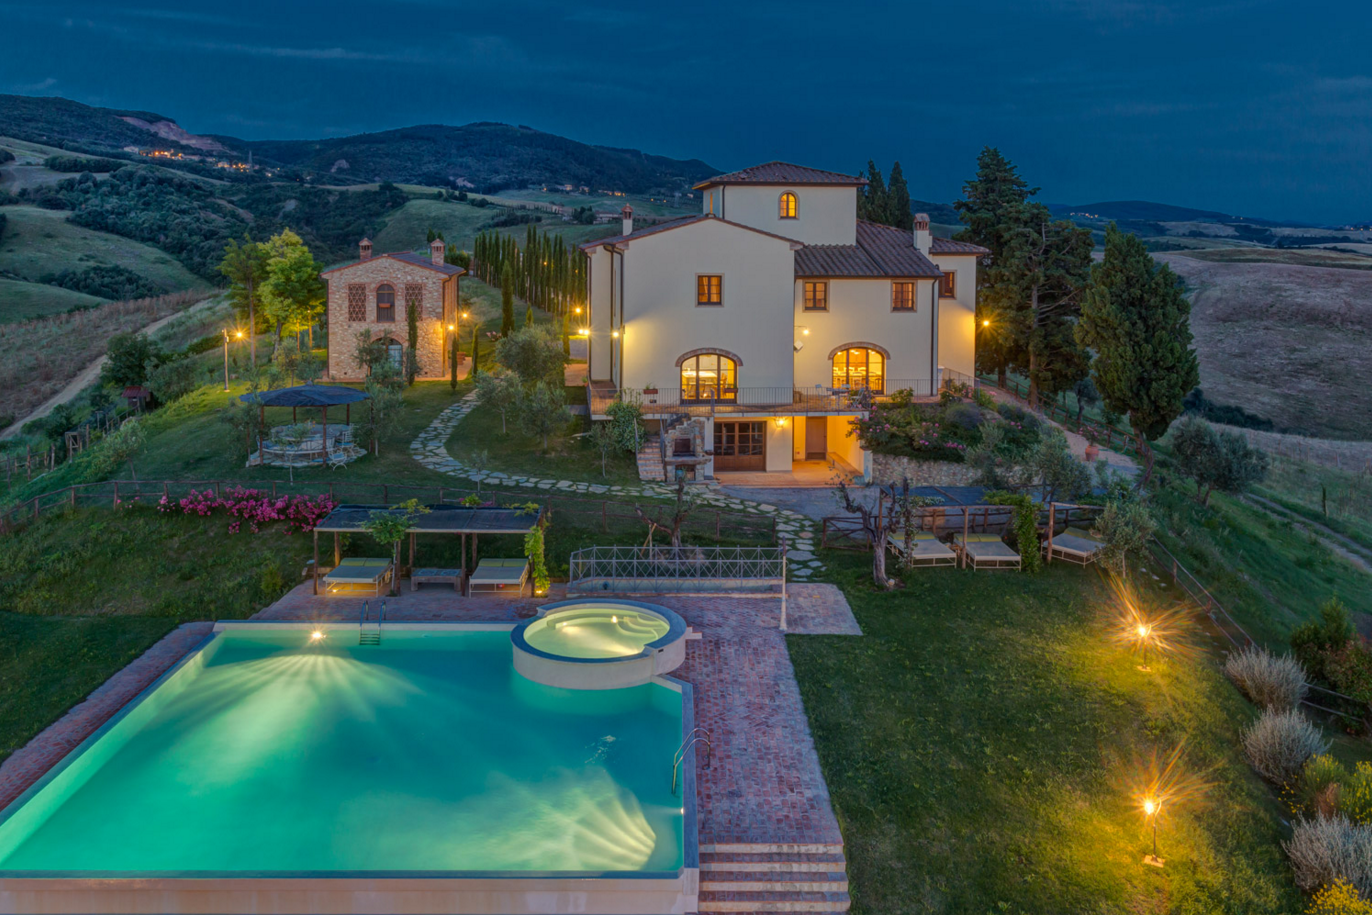 Sale Home In Toscania Italy